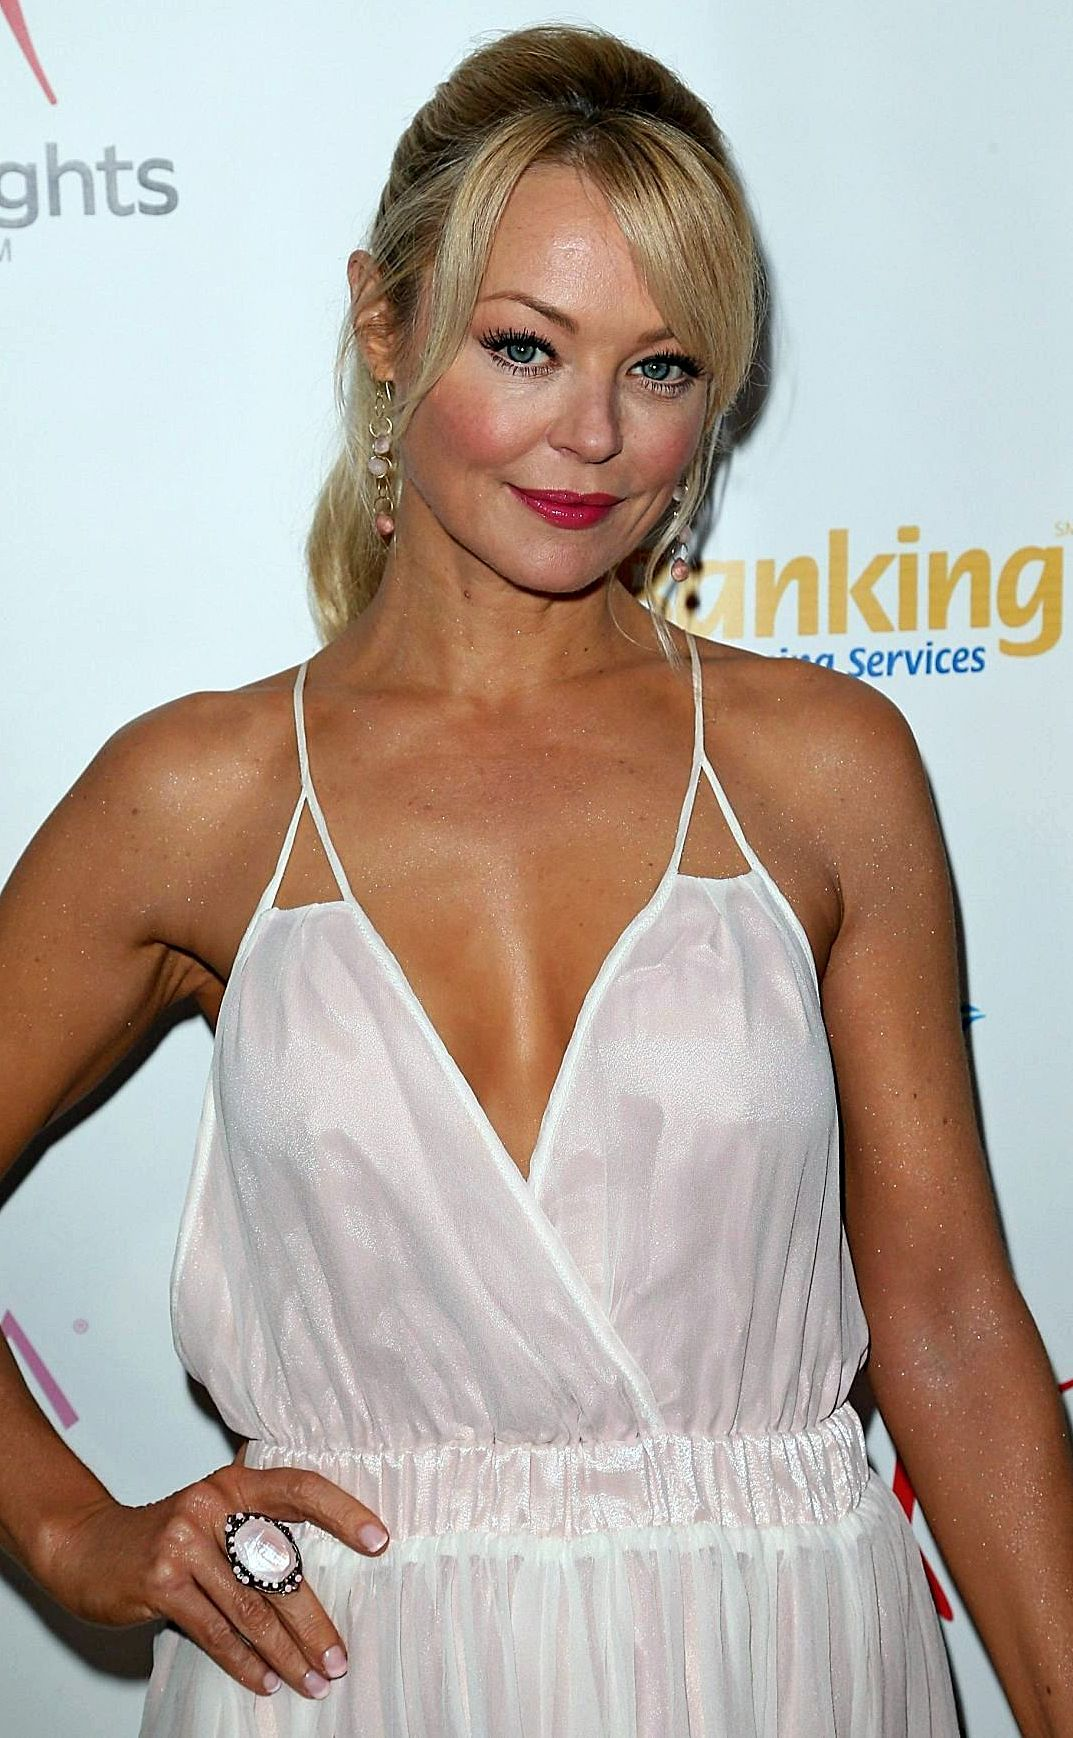 Charlotte Ross nude (39 foto and video), Sexy, Leaked, Boobs, swimsuit 2006